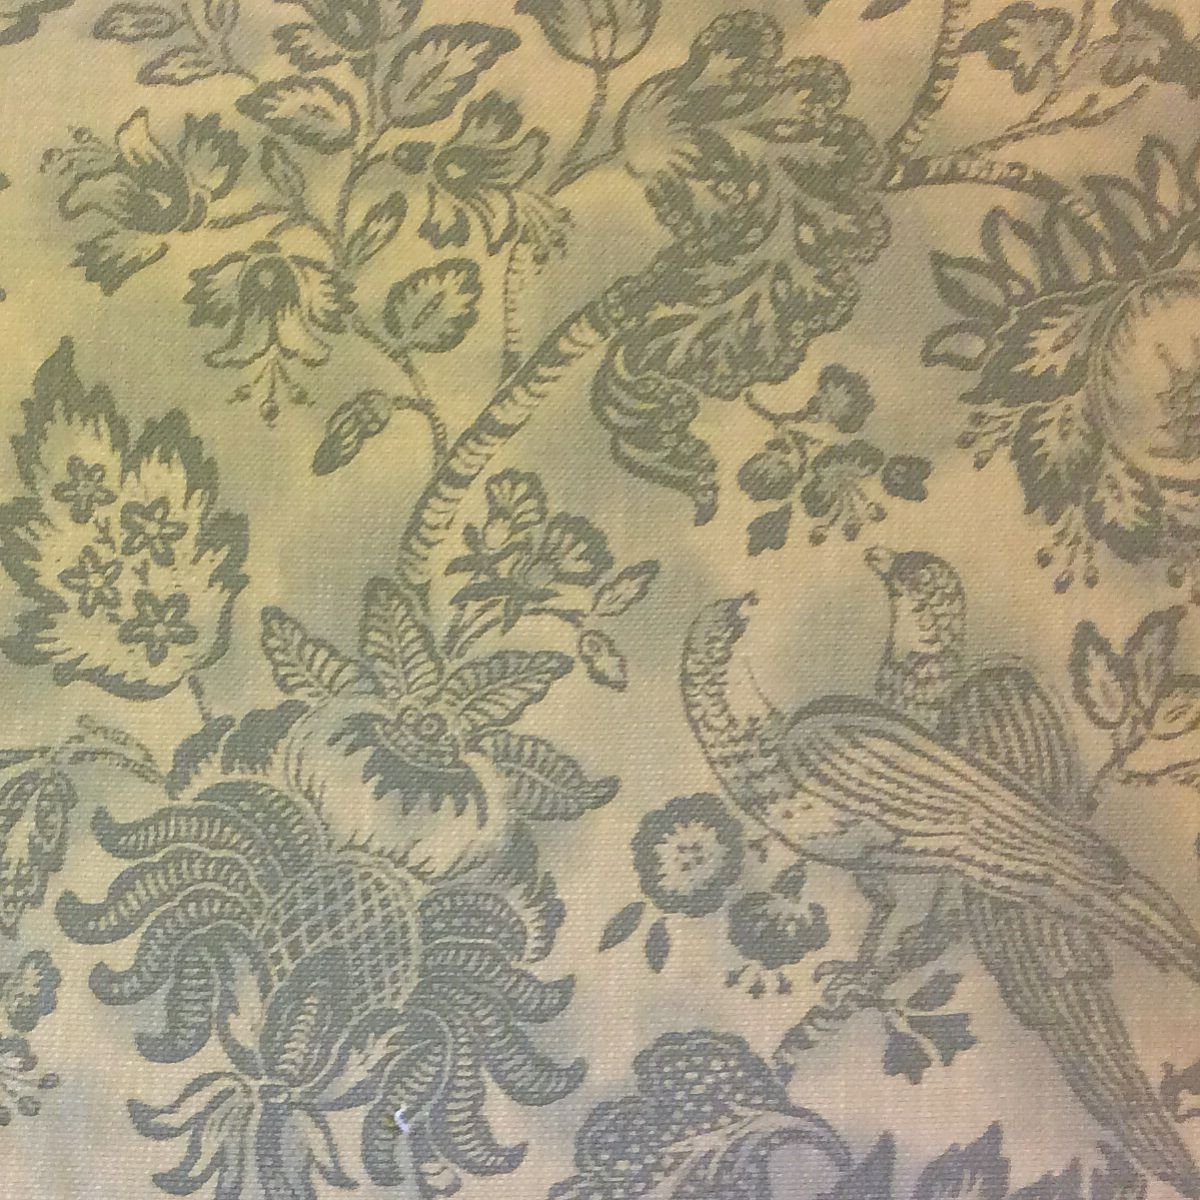 Toile Bird Fl Large Scale Spa Blue Heavy Cotton Fabric Drapery Upholstery Closeout Hd364